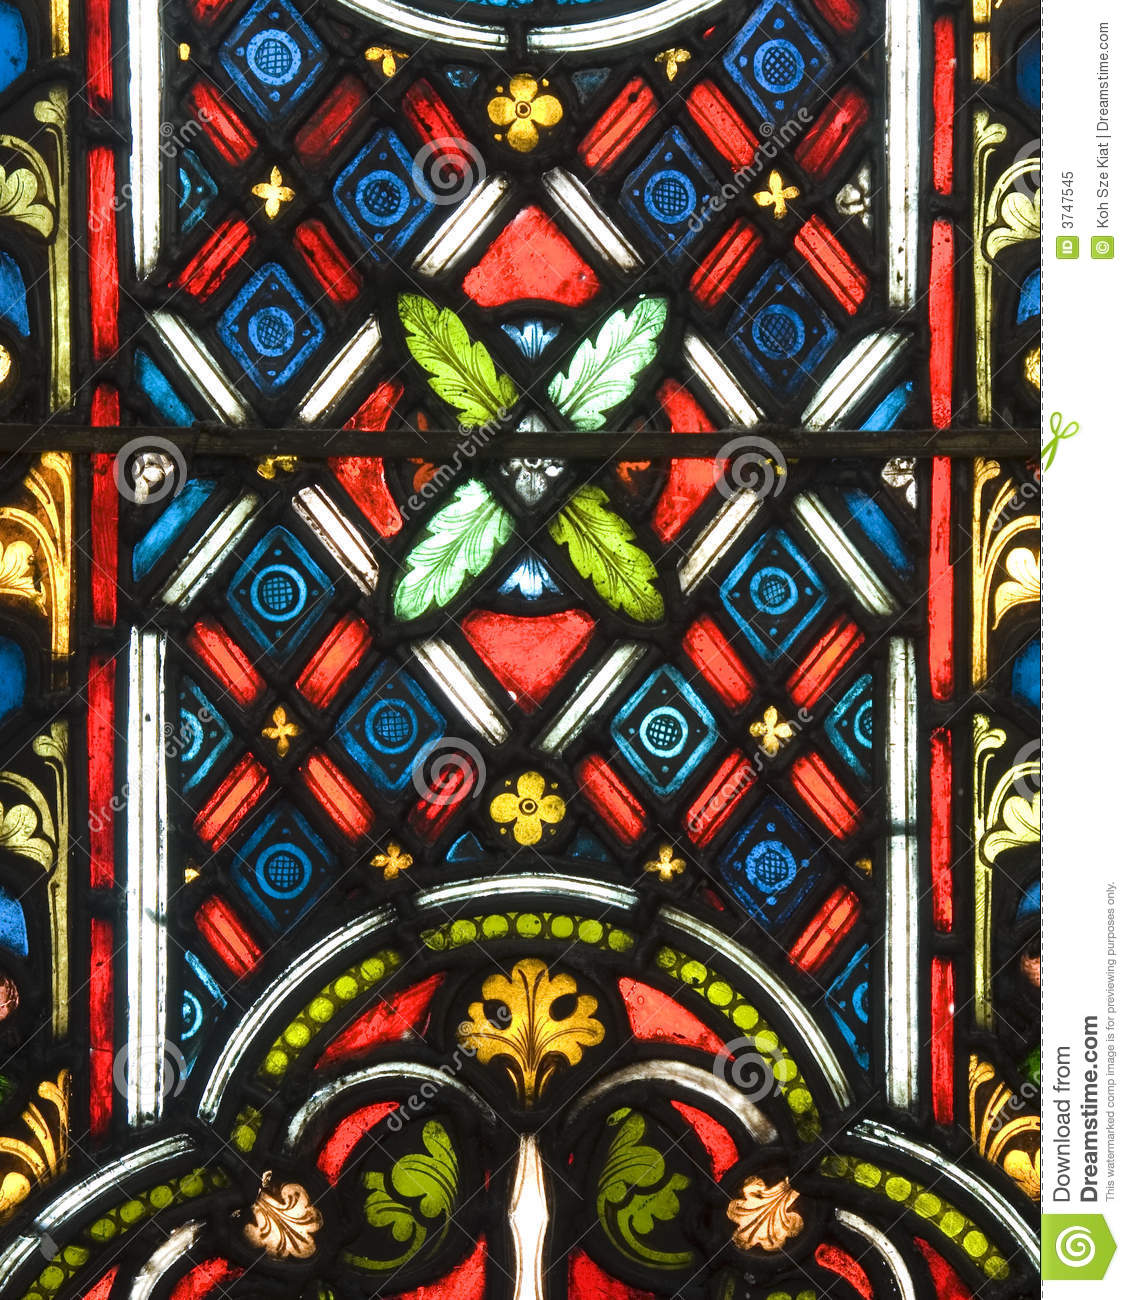 Stained Glass Patterns Stock Image Of Colorful